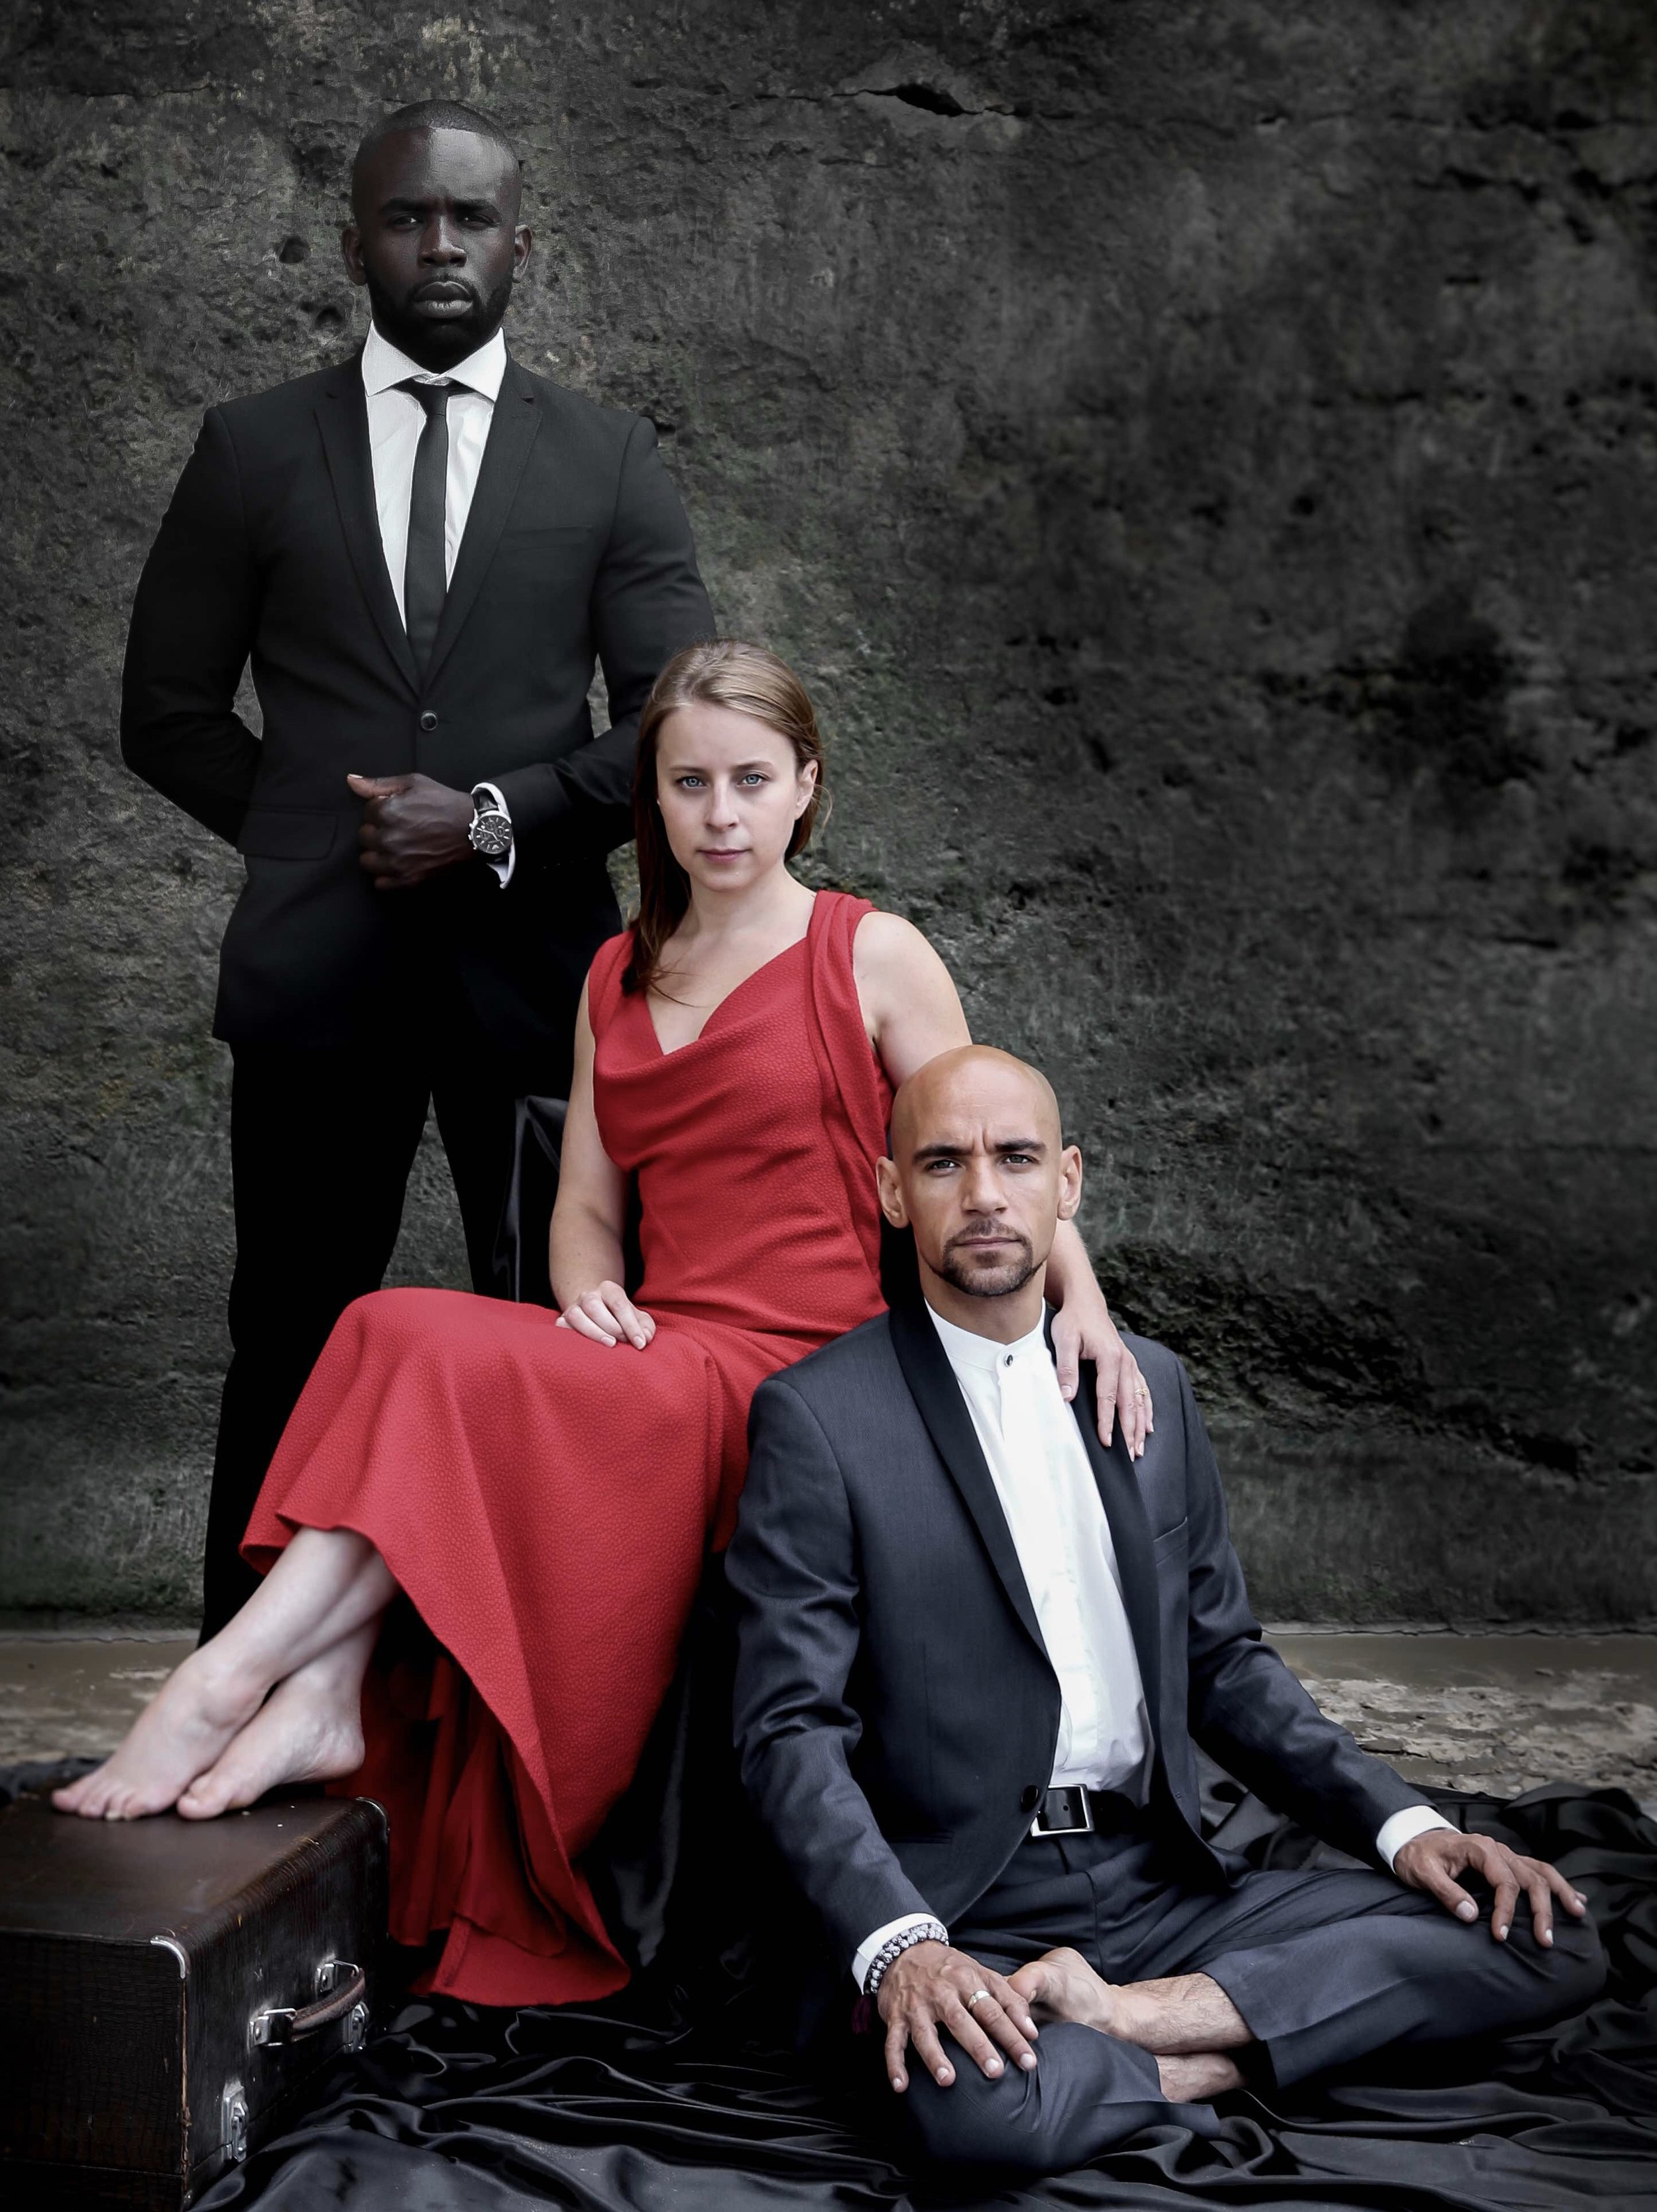 The combined forces of Jimmy Akingbola, Fraser Ayres and Minnie Ayres